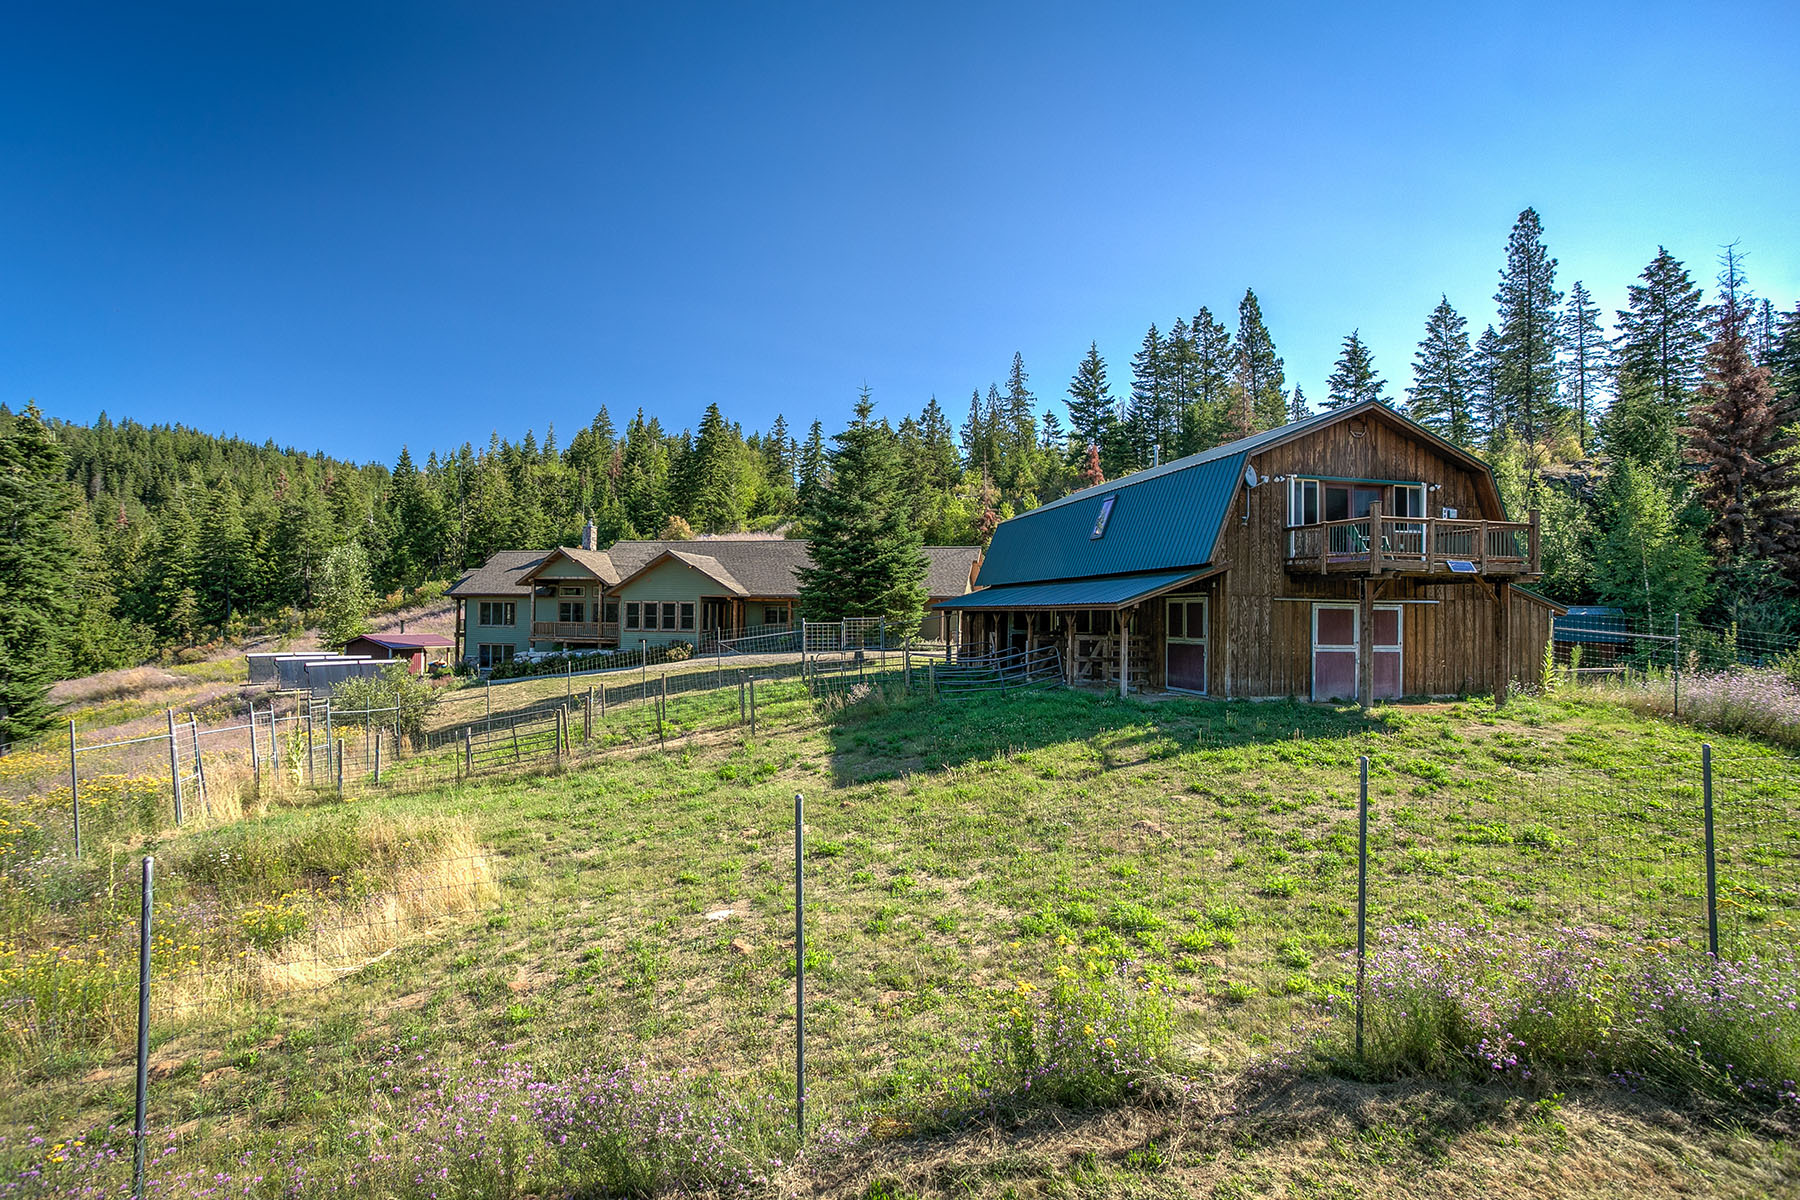 Maison unifamiliale pour l Vente à 2 Homes, 3 Cabins & 1 Barn on 320 Acres 0 Trout Creek Ranch Rd Sandpoint, Idaho, 83864 États-Unis